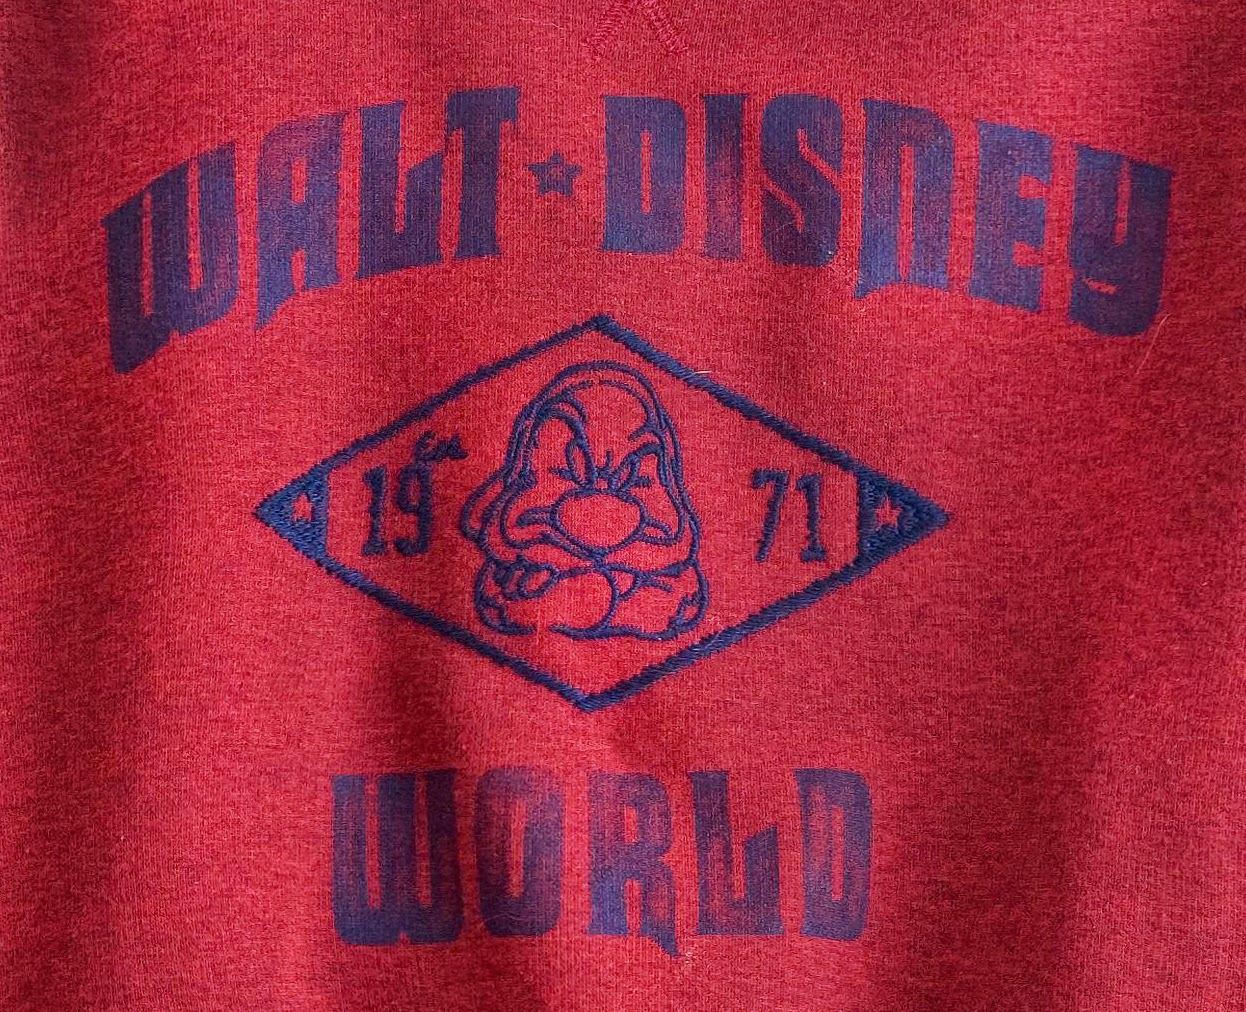 c4bbaea35b First available at the park and then online at the Disney Store in February  2015. 80% cotton 20% polyester. Retail  49.95.